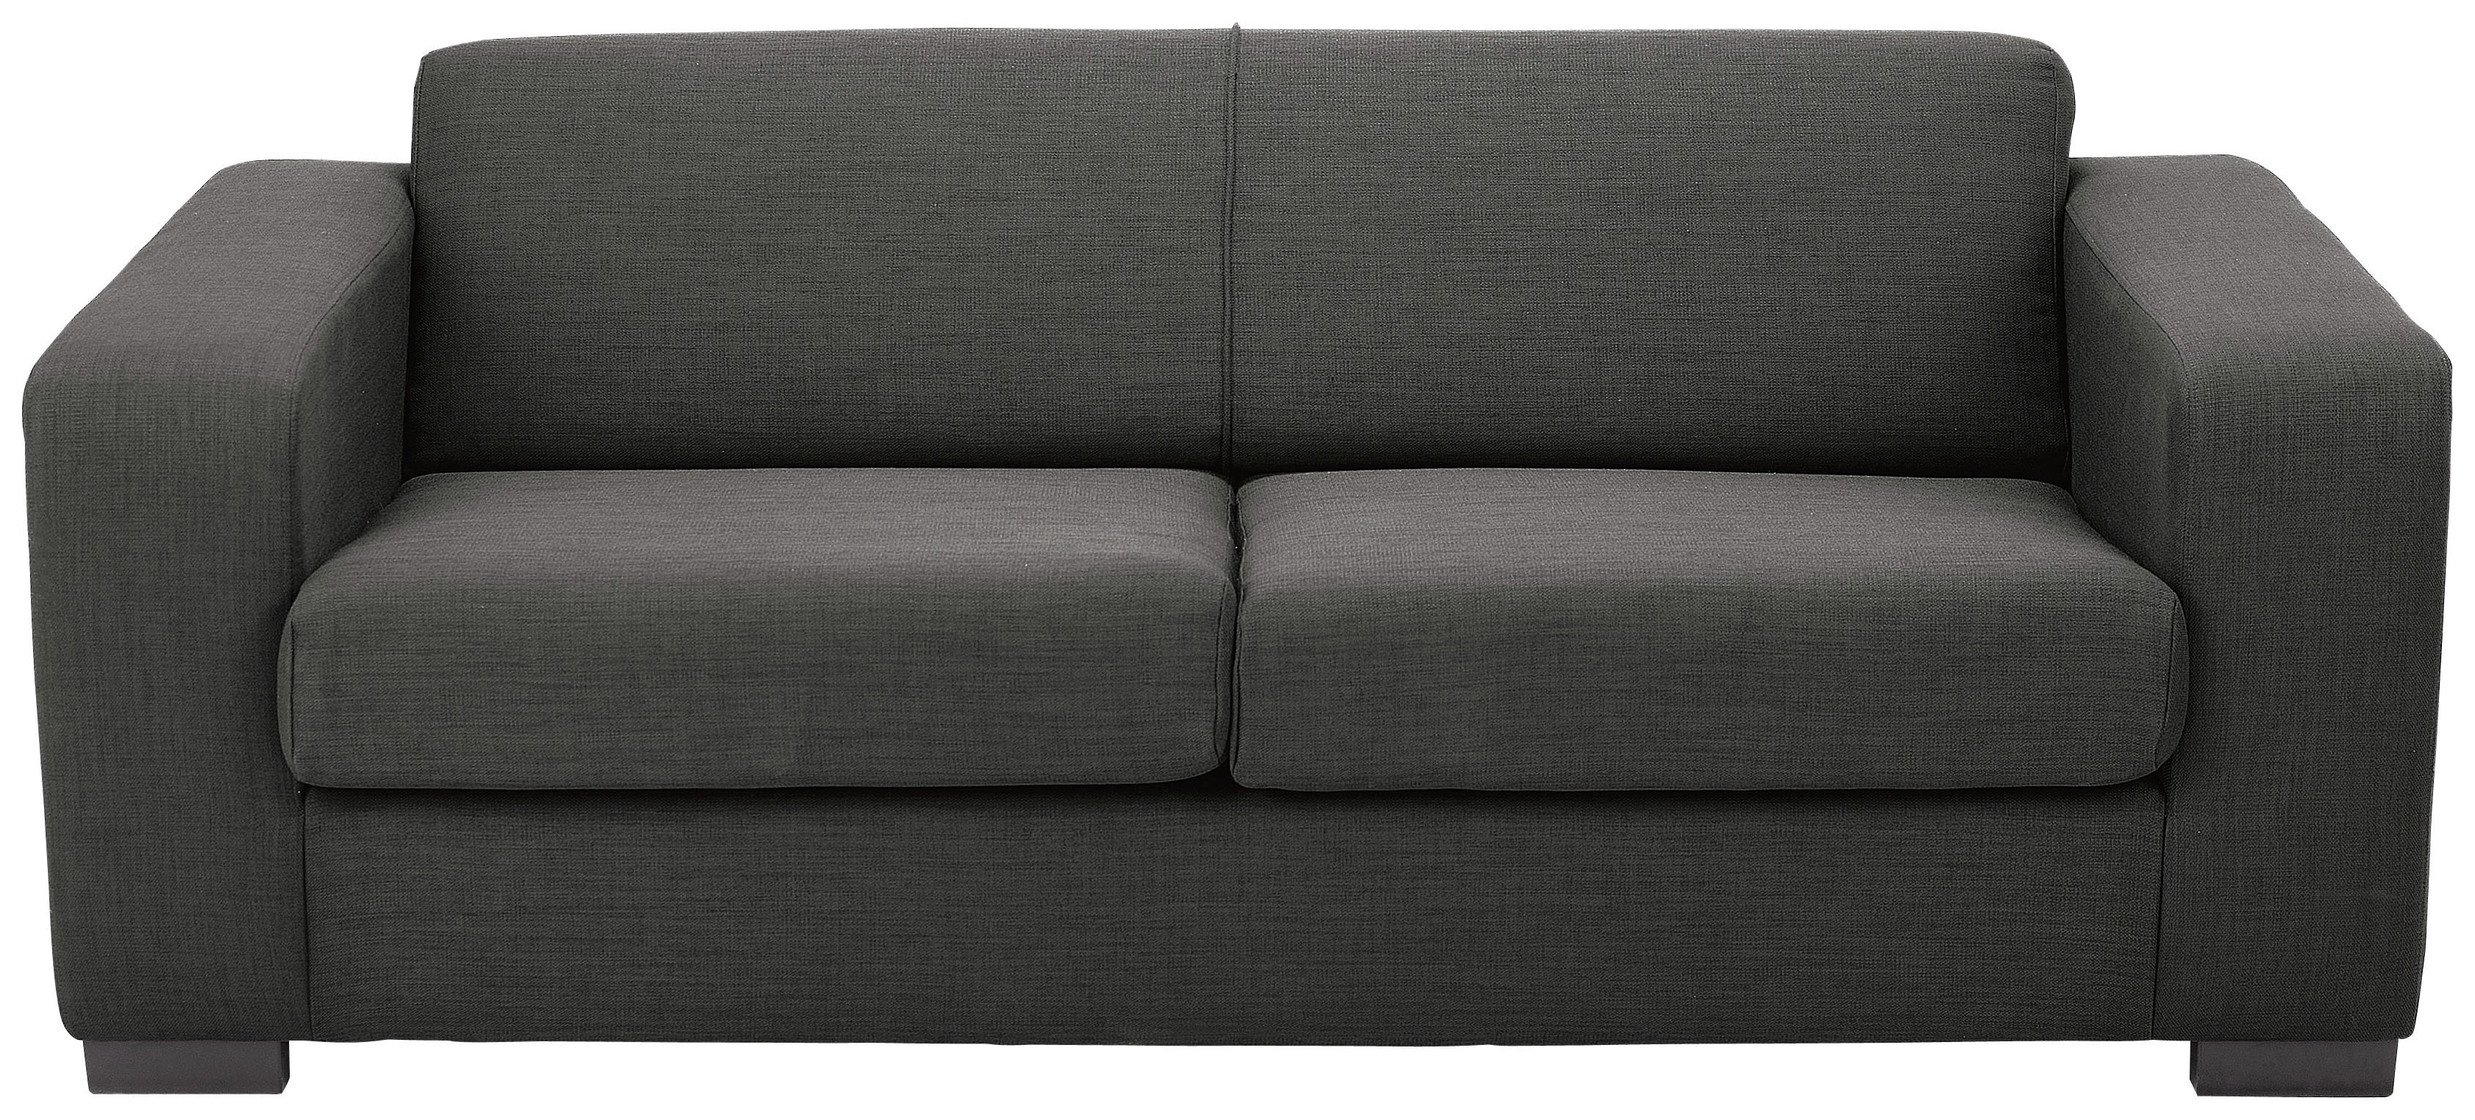 Hygena New Ava 2 Seater Fabric Sofa Bed - Charcoal